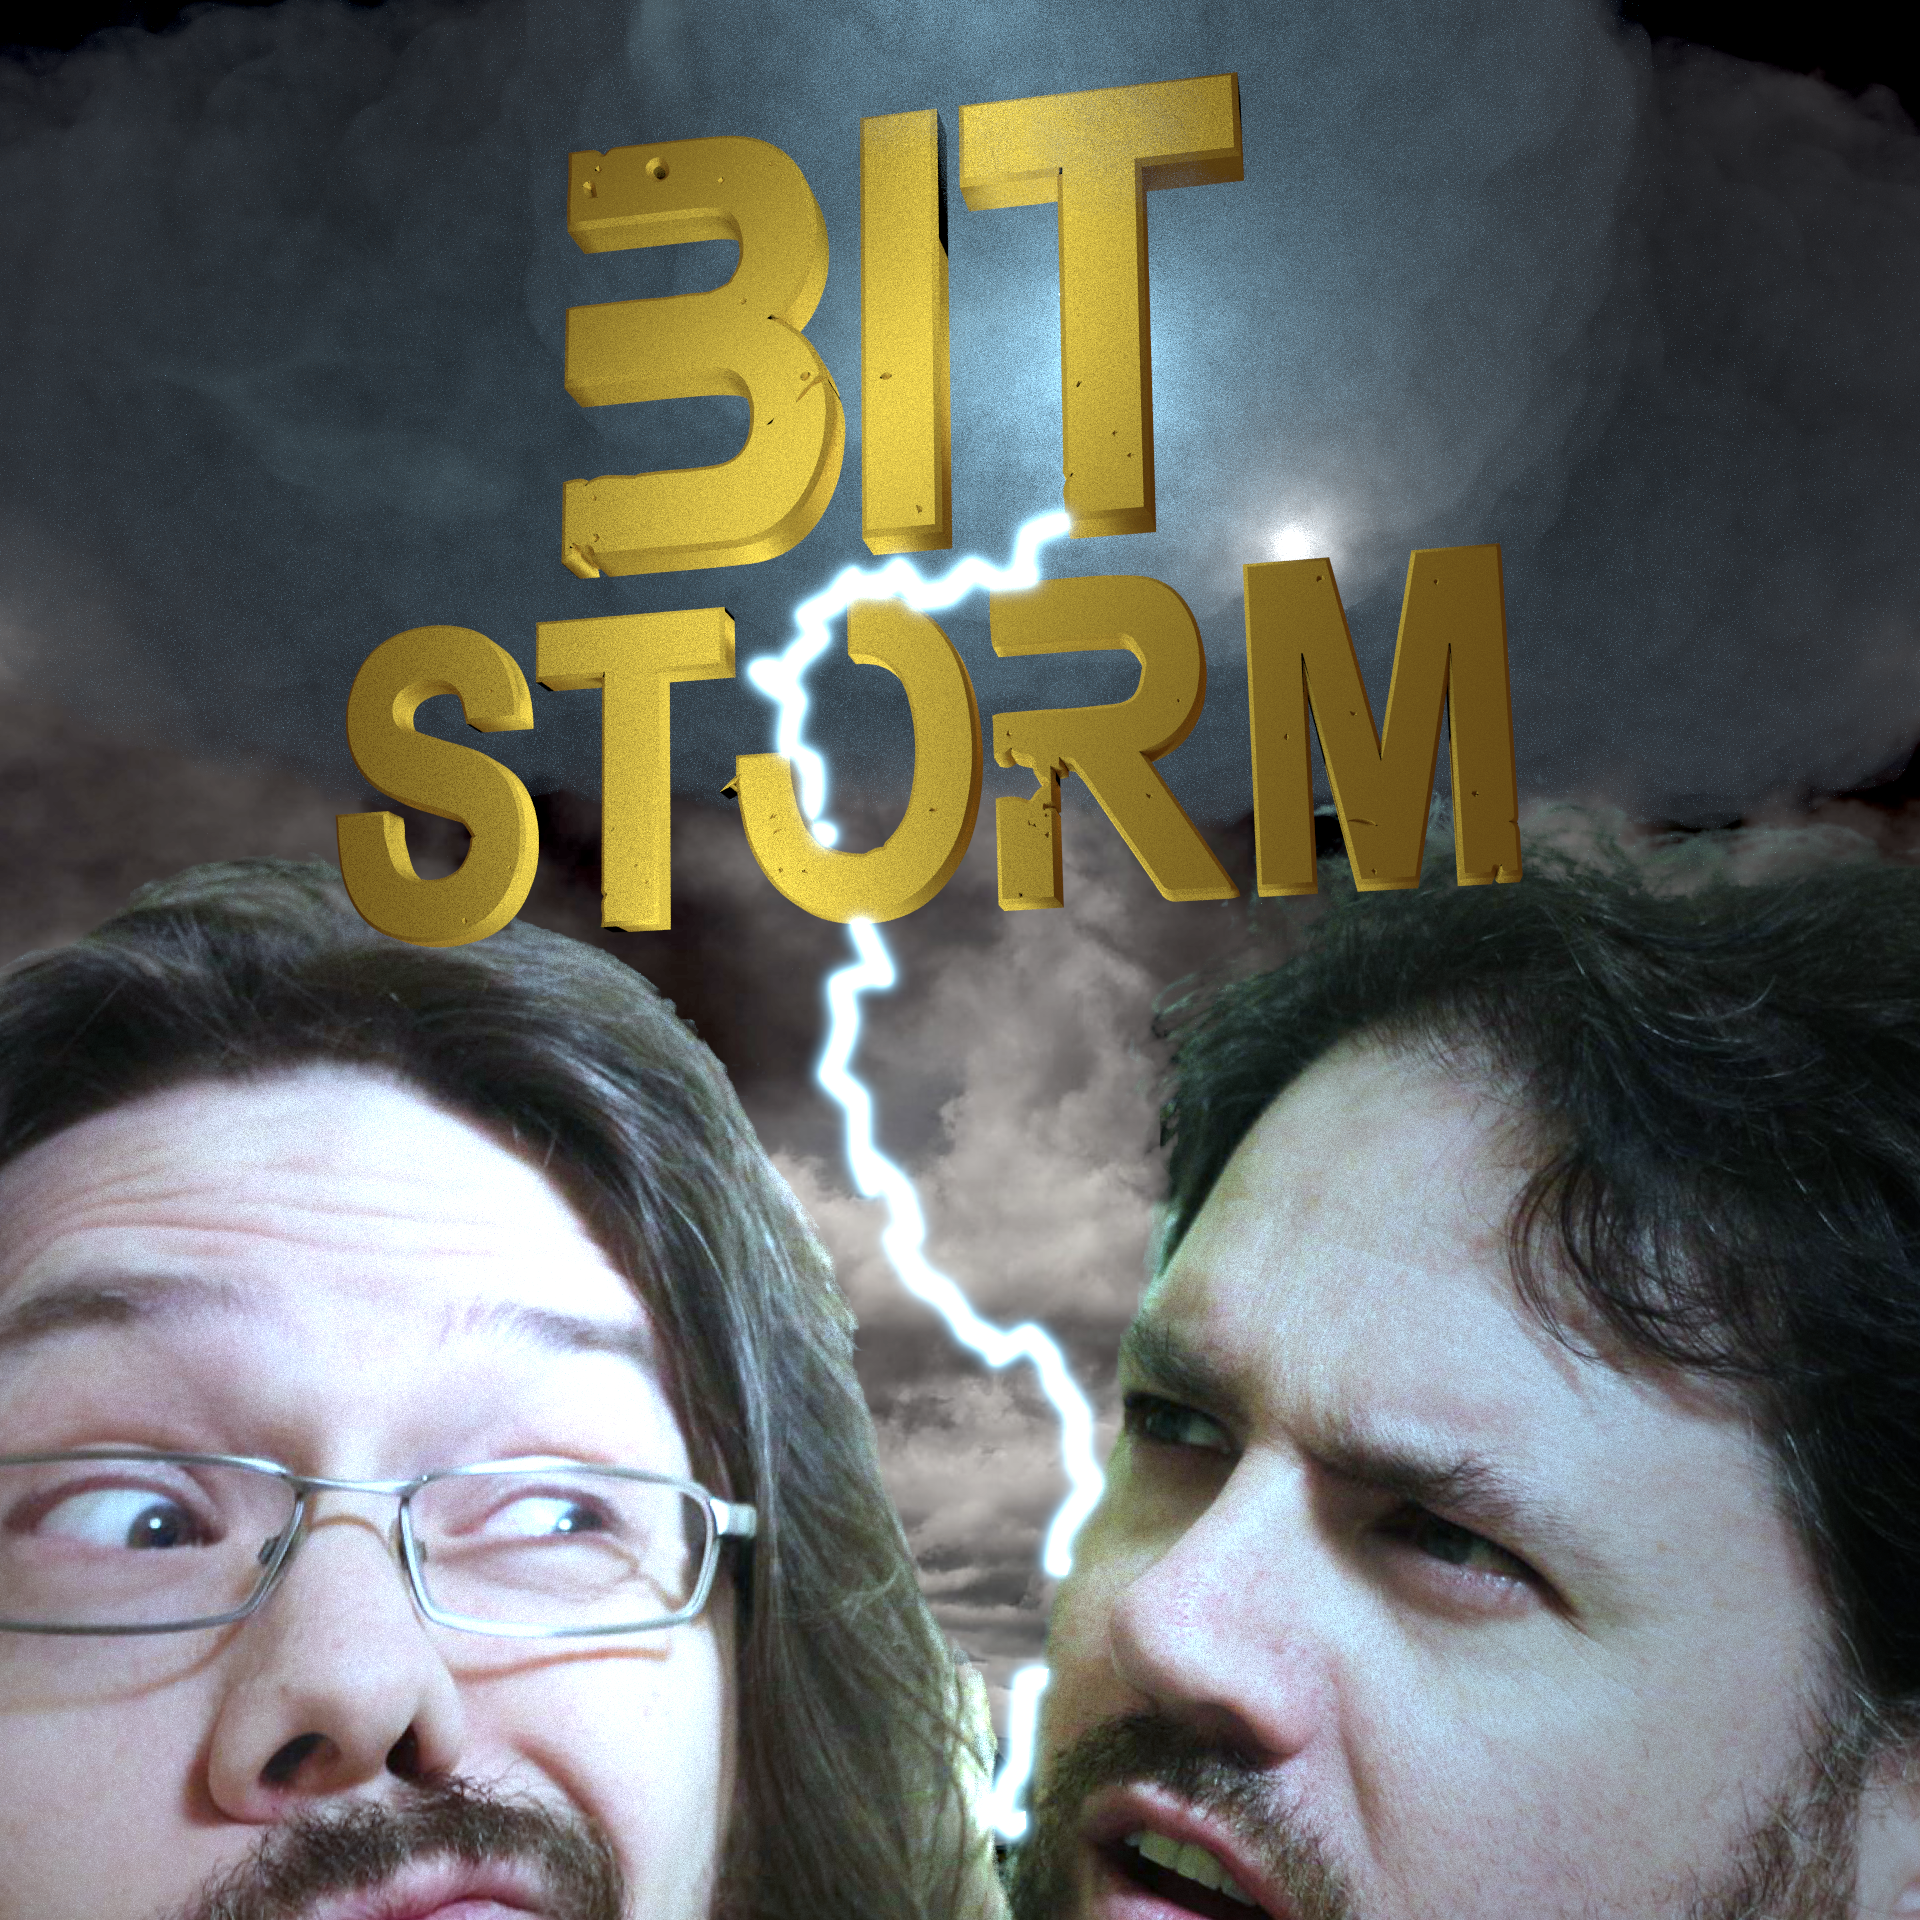 BIT STORM    A comedy game design podcast by two guys who know nothing about comedy nor game design.  Join Trevor Scott and Ben Slinger as they take prompts from random word generators, movies, game titles and more and turn them into occasionally hilarious but always interesting game designs.